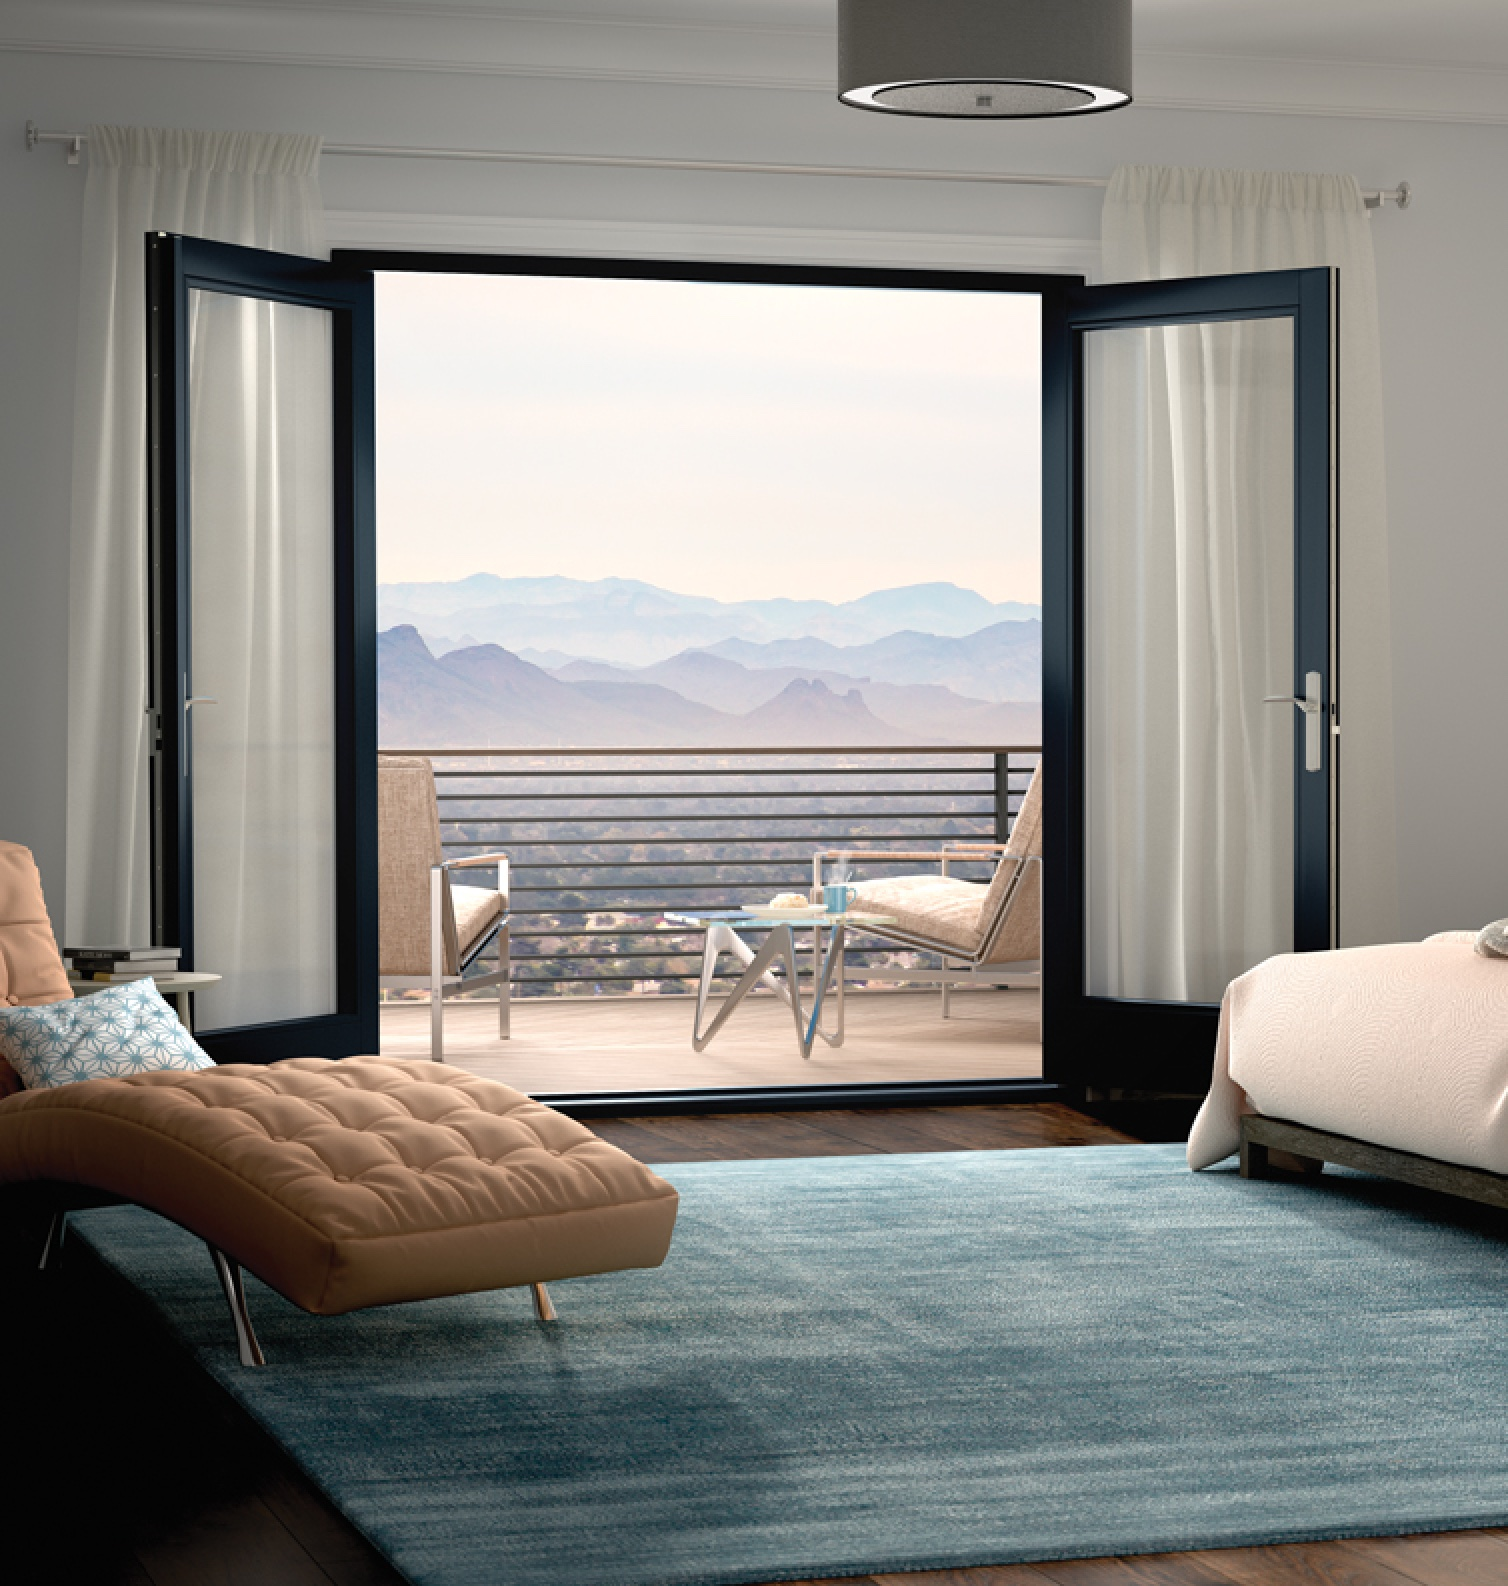 Glass French doors from The Folding Door Store that open onto a balcony overlooking mountains.